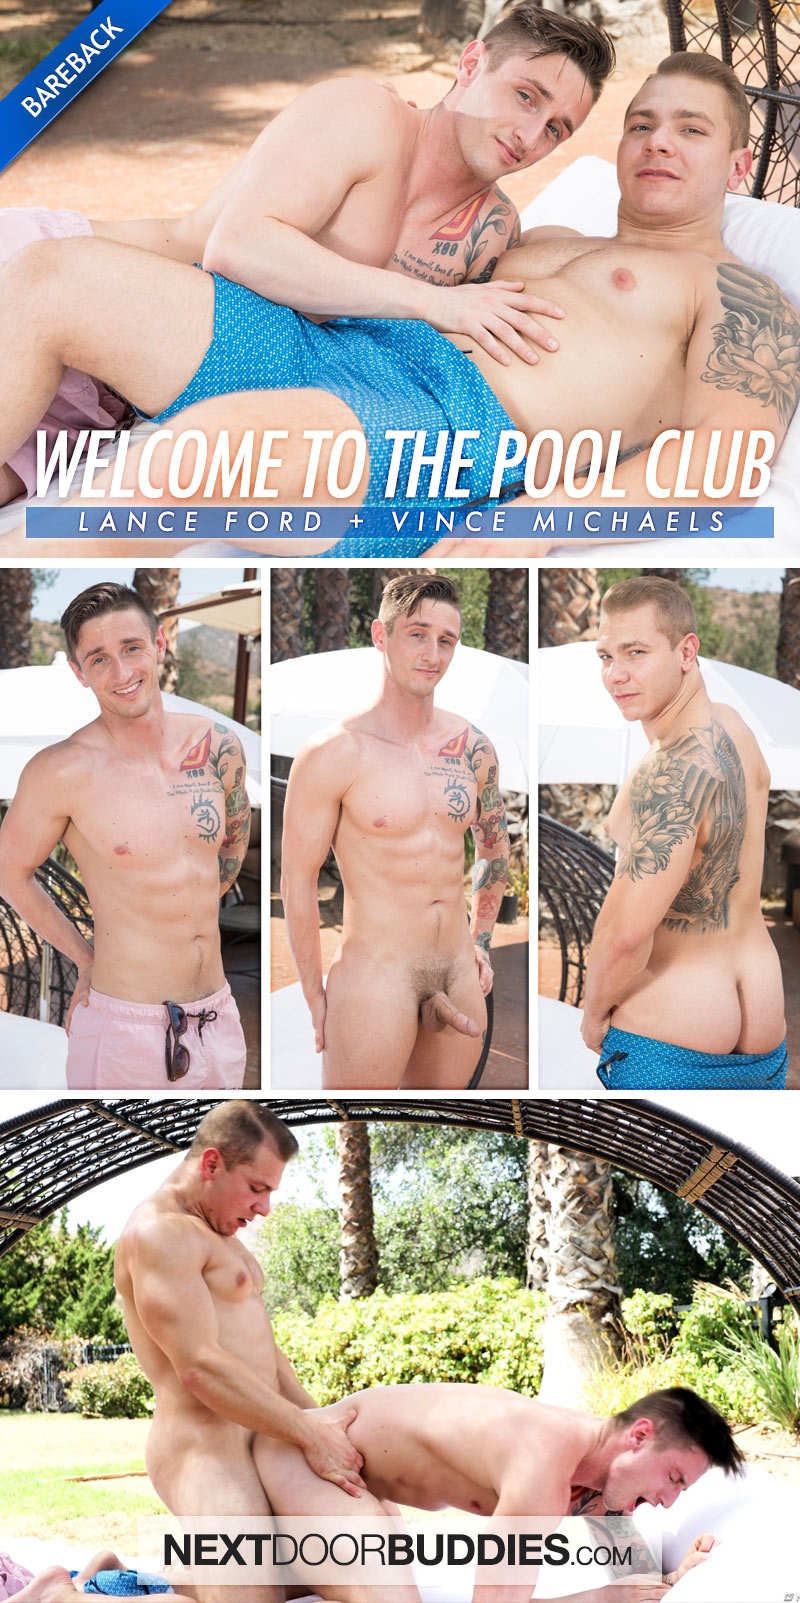 Welcome to the Pool Club (Vince Michaels Fucks Lance Ford) (Bareback) at Next Door Buddies